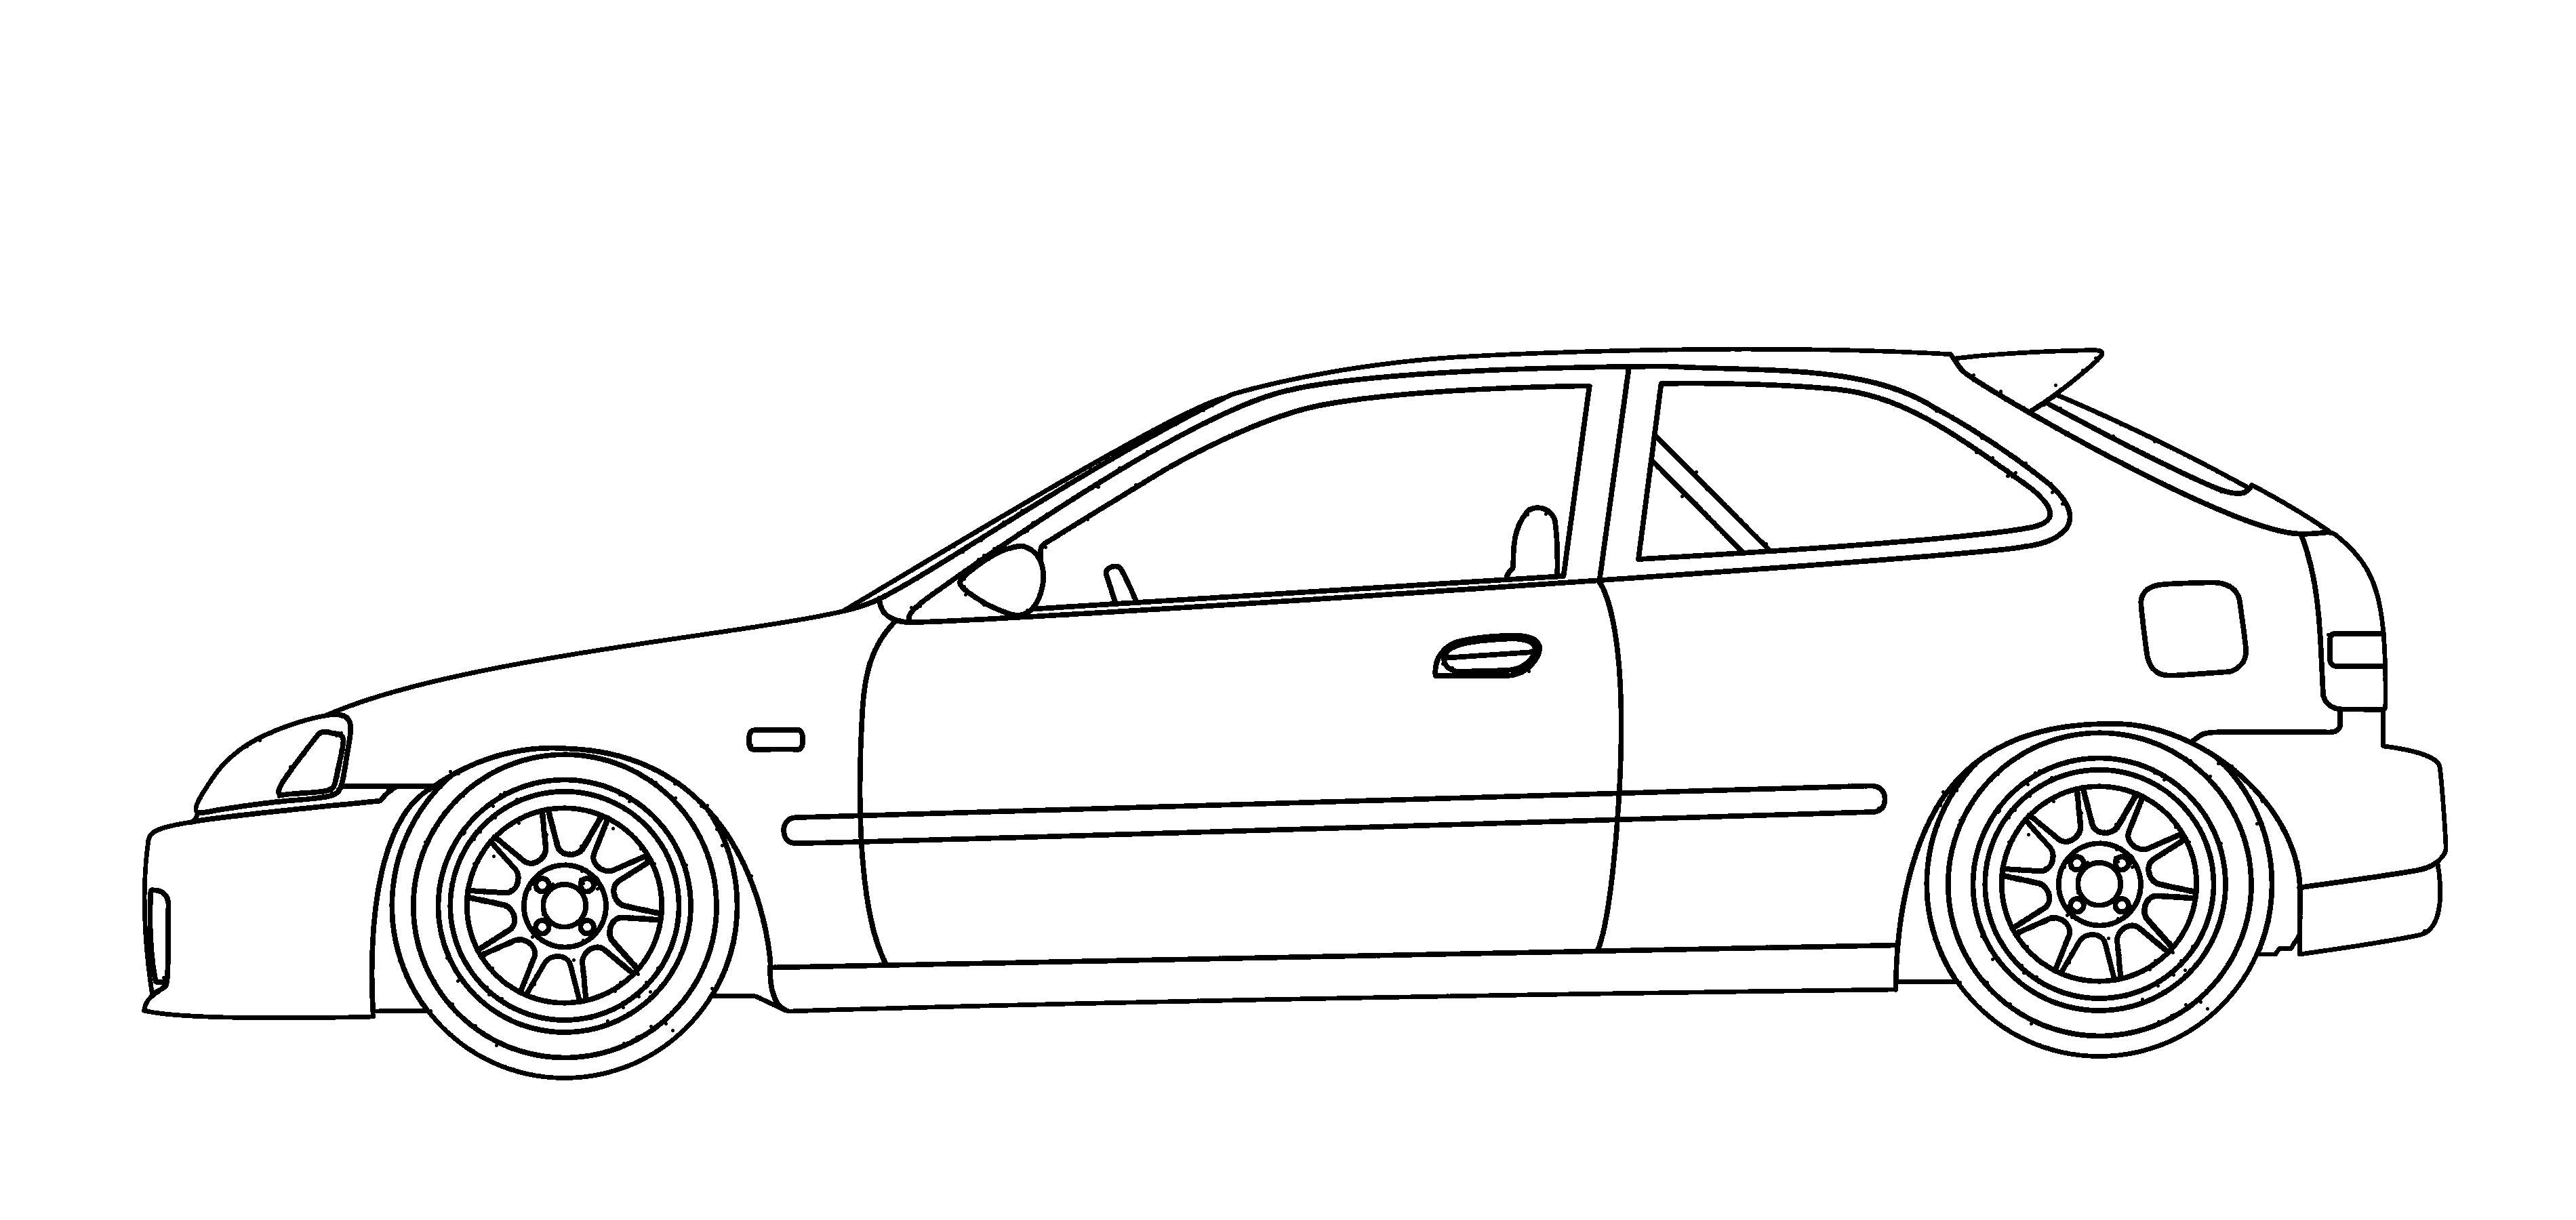 Honda drawing s2000. Civic ek hondas only